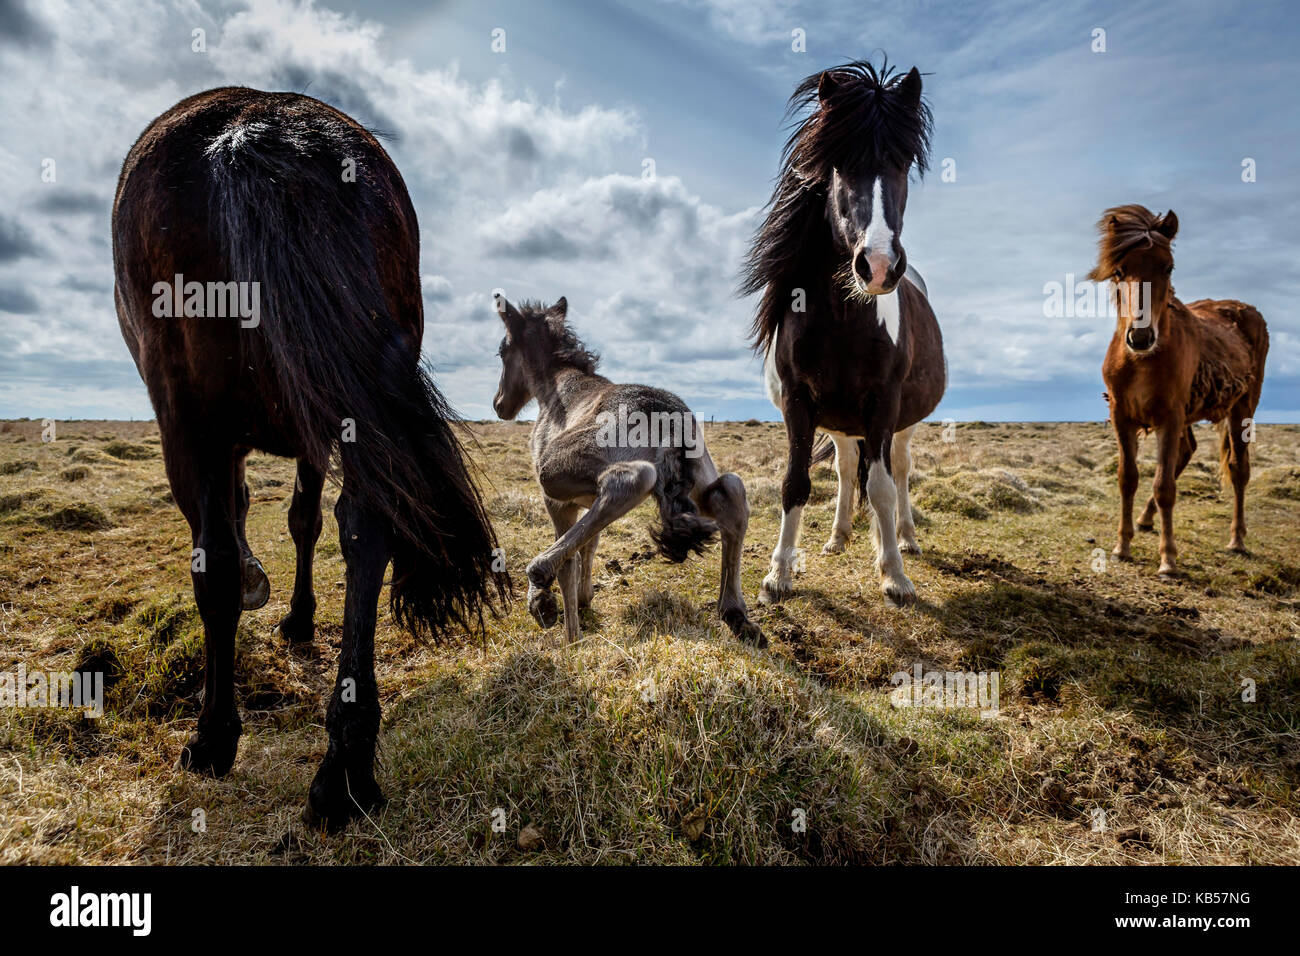 Newborn foal taking his first steps, Iceland Iceland pure-bred horse. - Stock Image